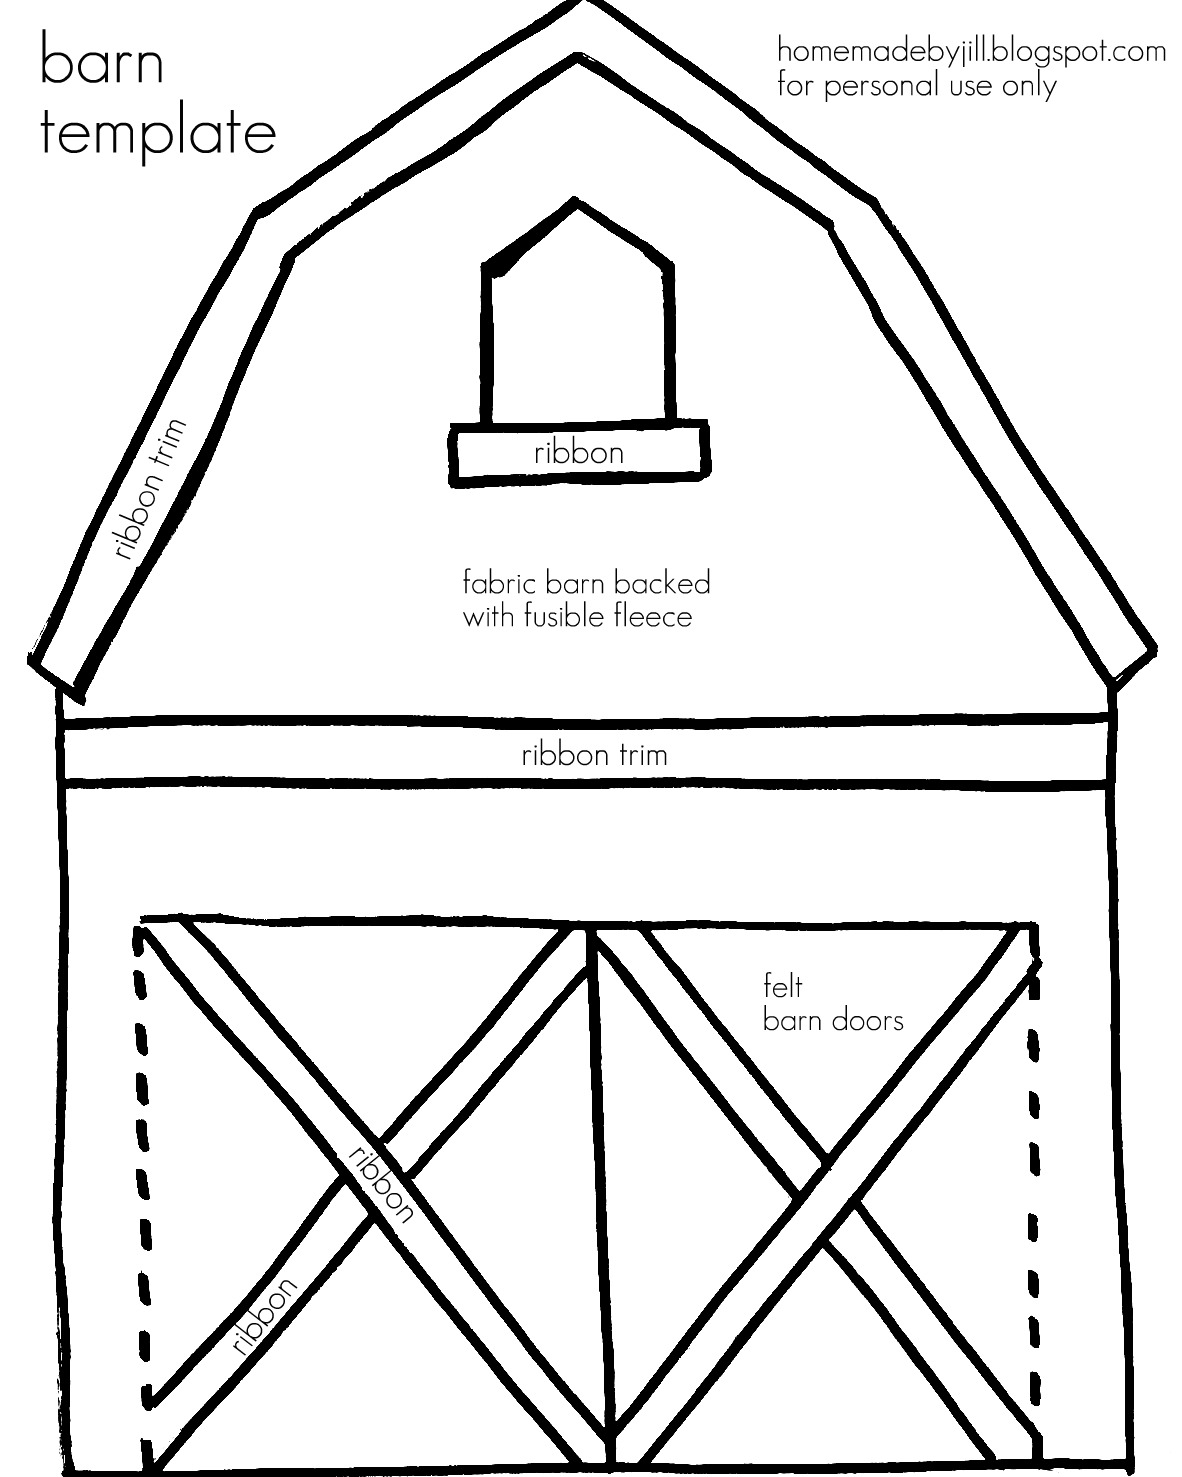 barn coloring pages for kids - photo#31